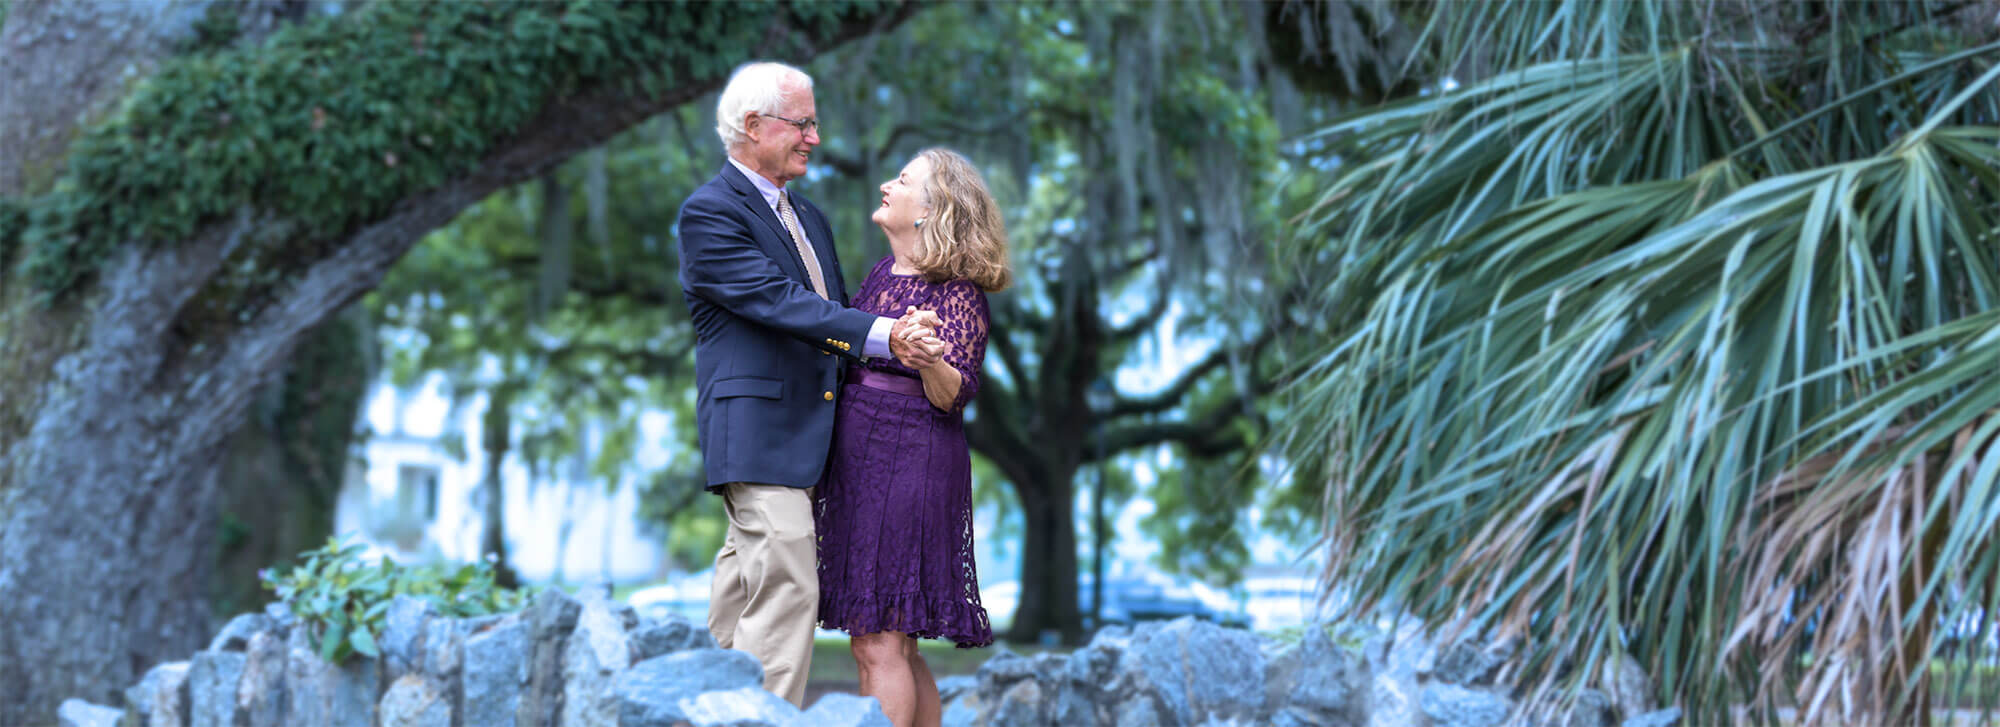 Just Dance from the Heart: Faculty Family Gives Back - LSU